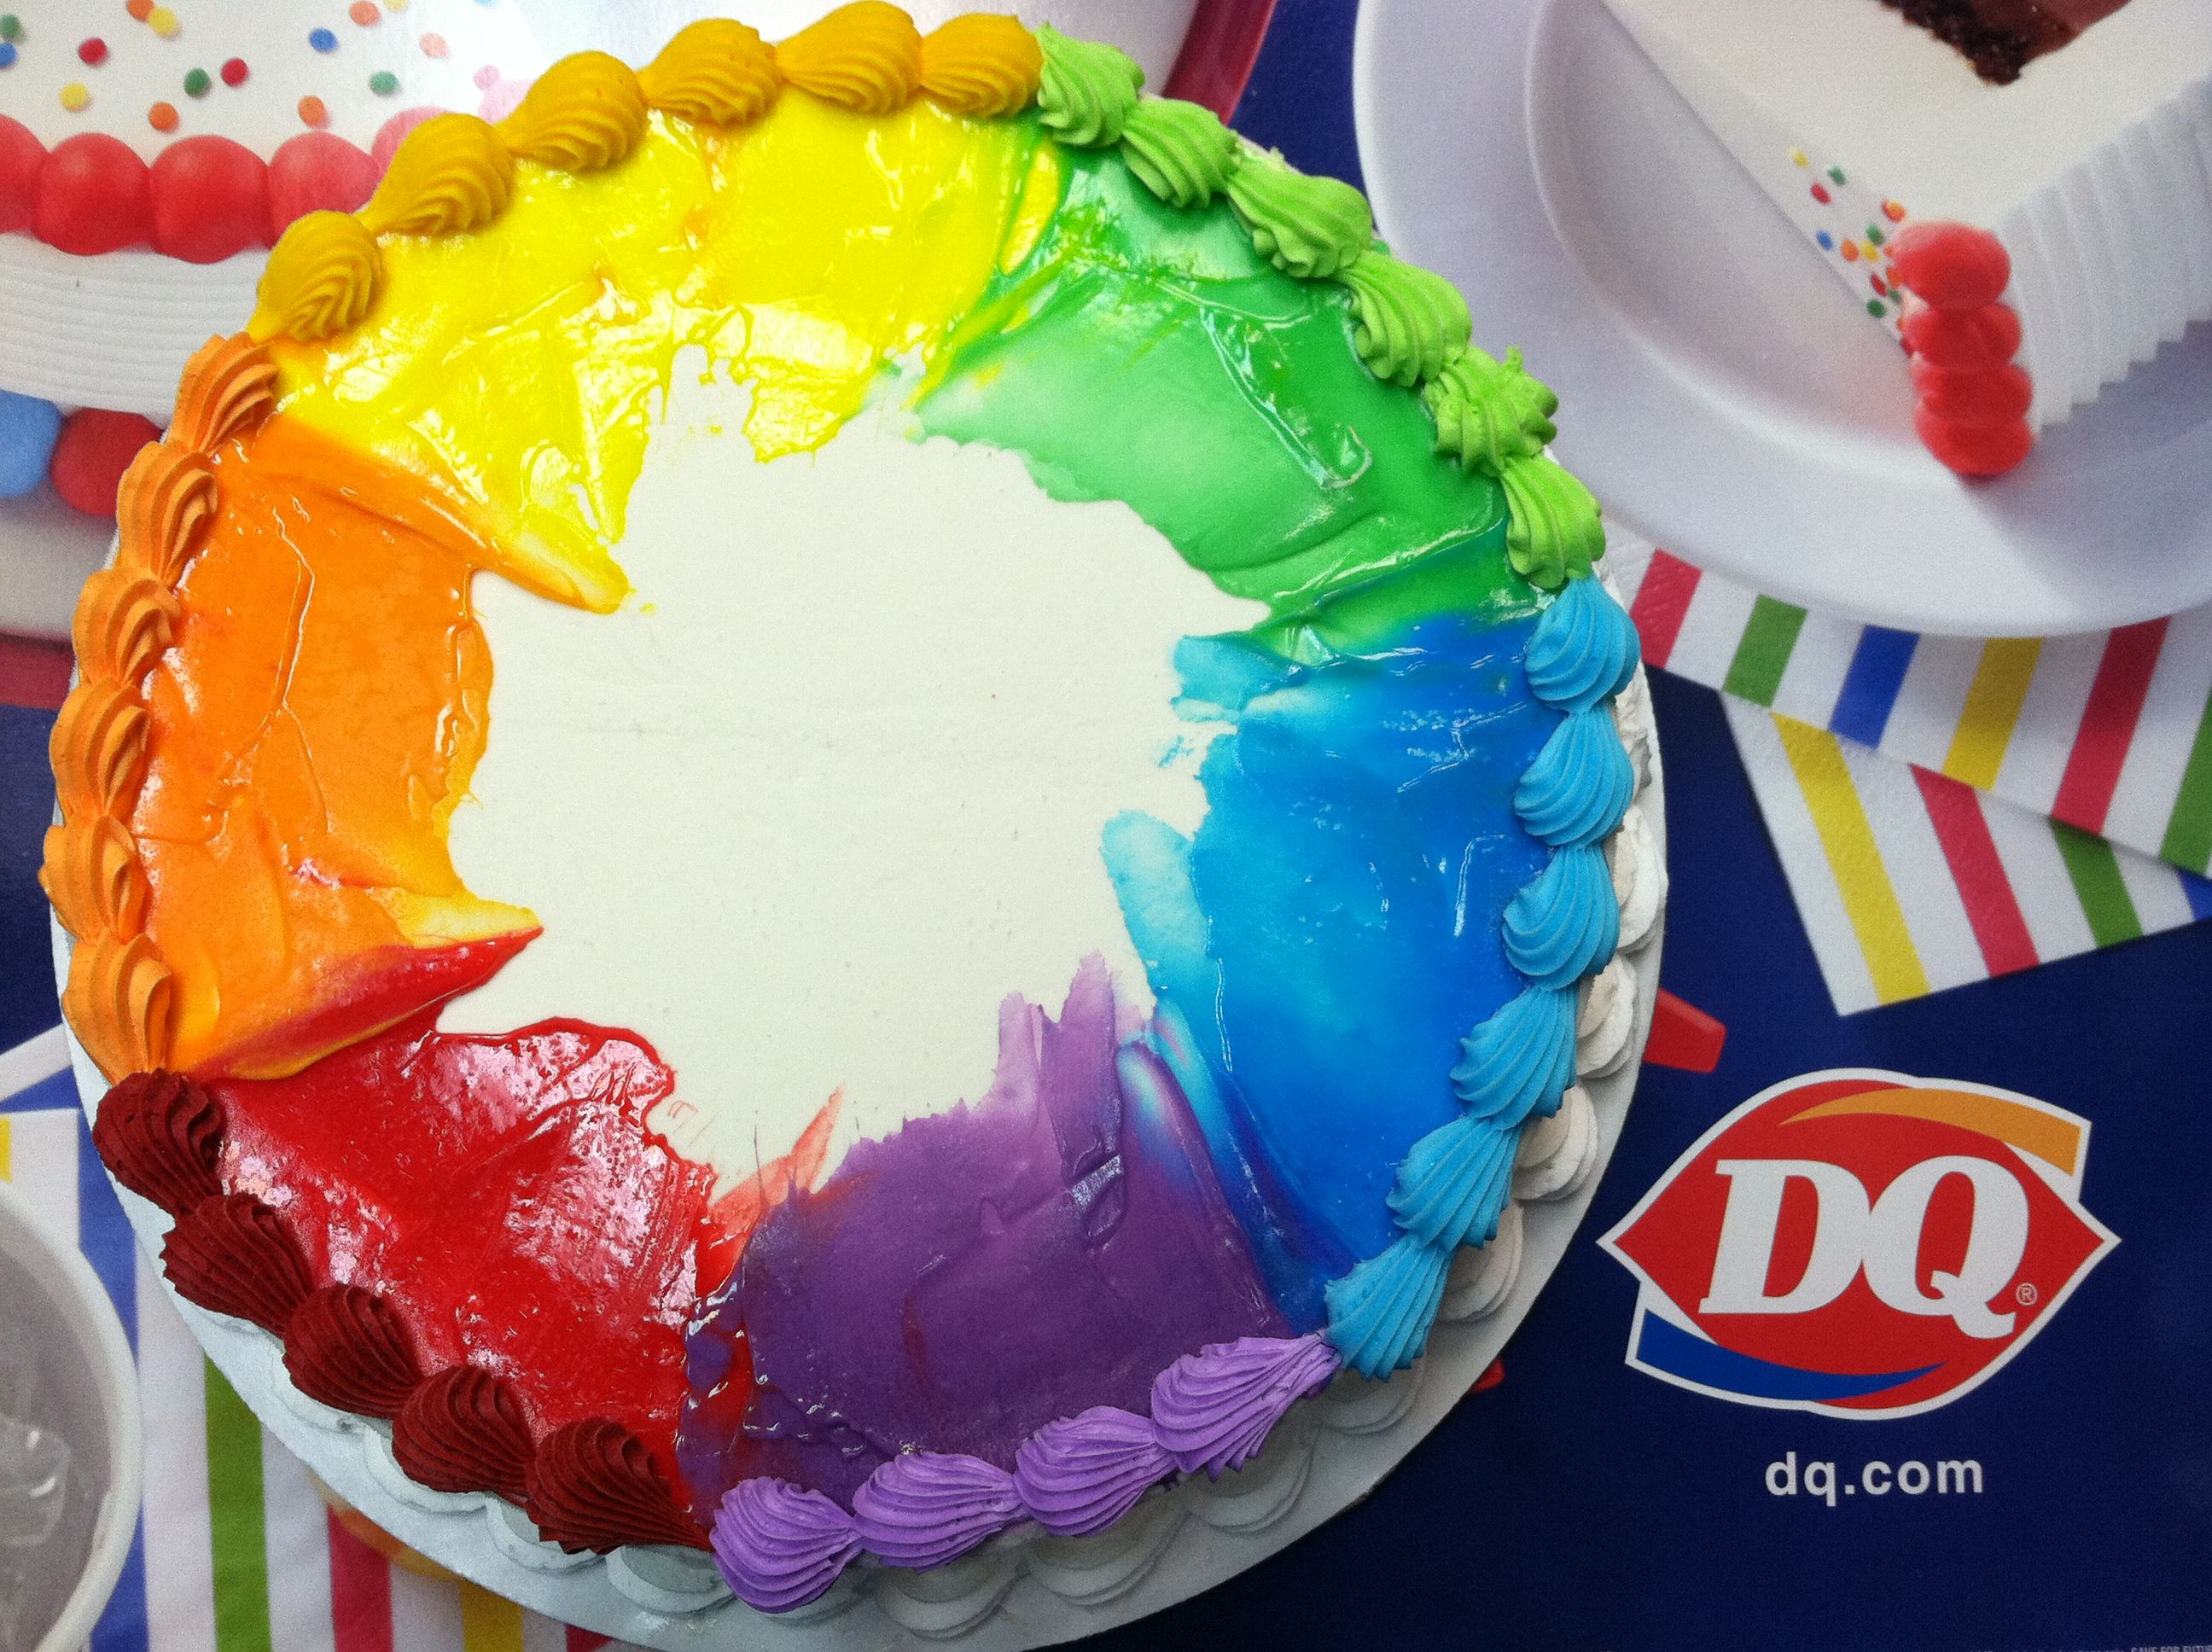 Admirable Pin On Dq Cake Ideas Funny Birthday Cards Online Fluifree Goldxyz